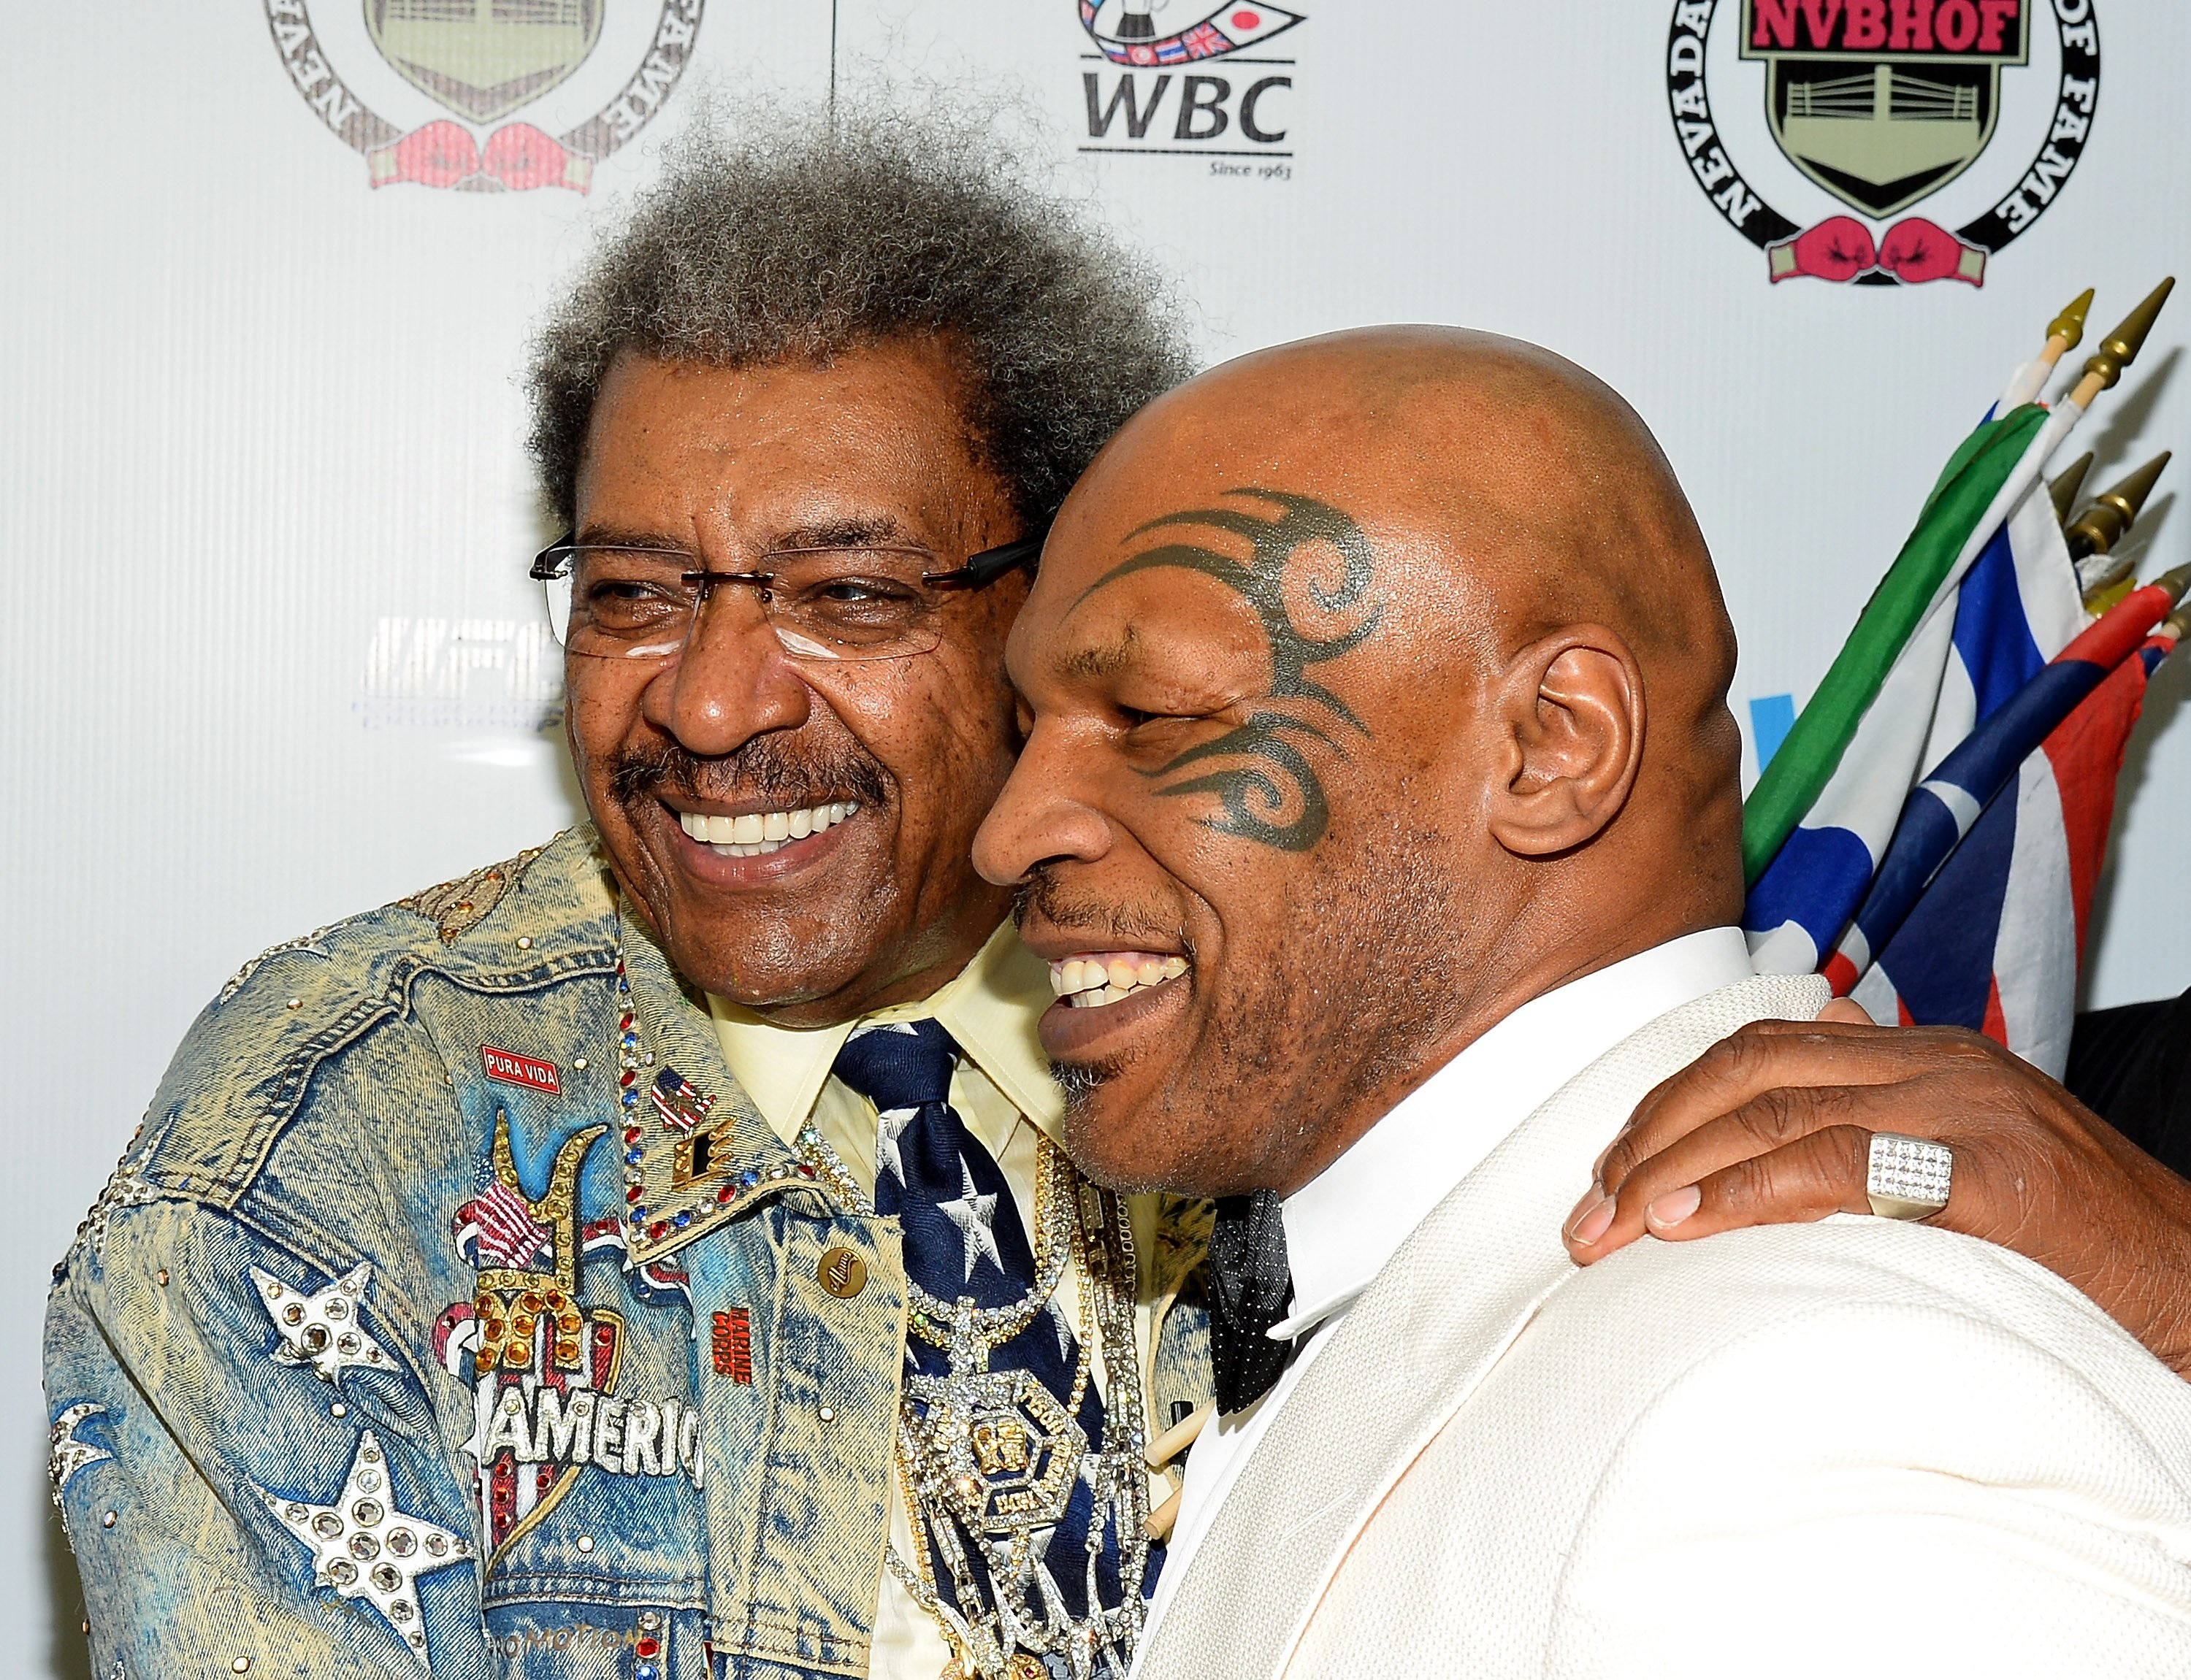 Boxing promoter and inductee Don King (L) and former boxer and inductee Mike Tyson arrive at the Nevada Boxing Hall of Fame inaugural induction gala. | Source: Getty Images